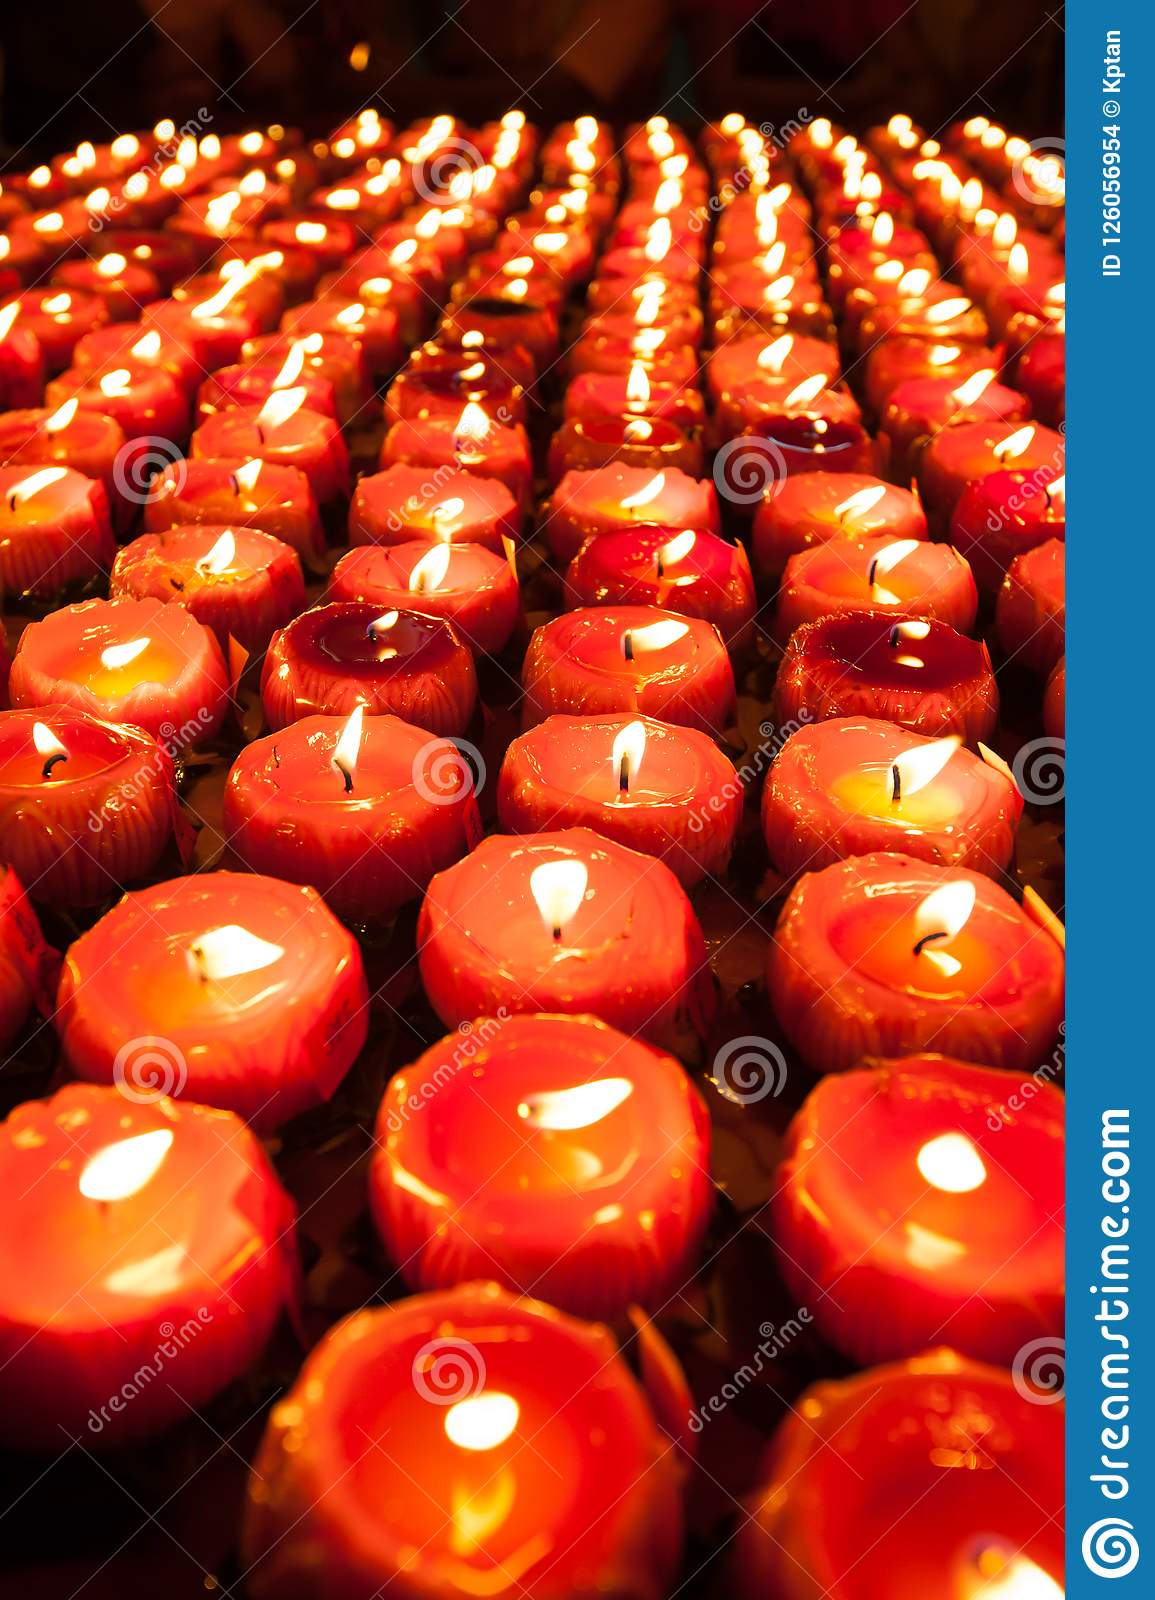 Lotus candles stock photo. Image of flower, religion ...